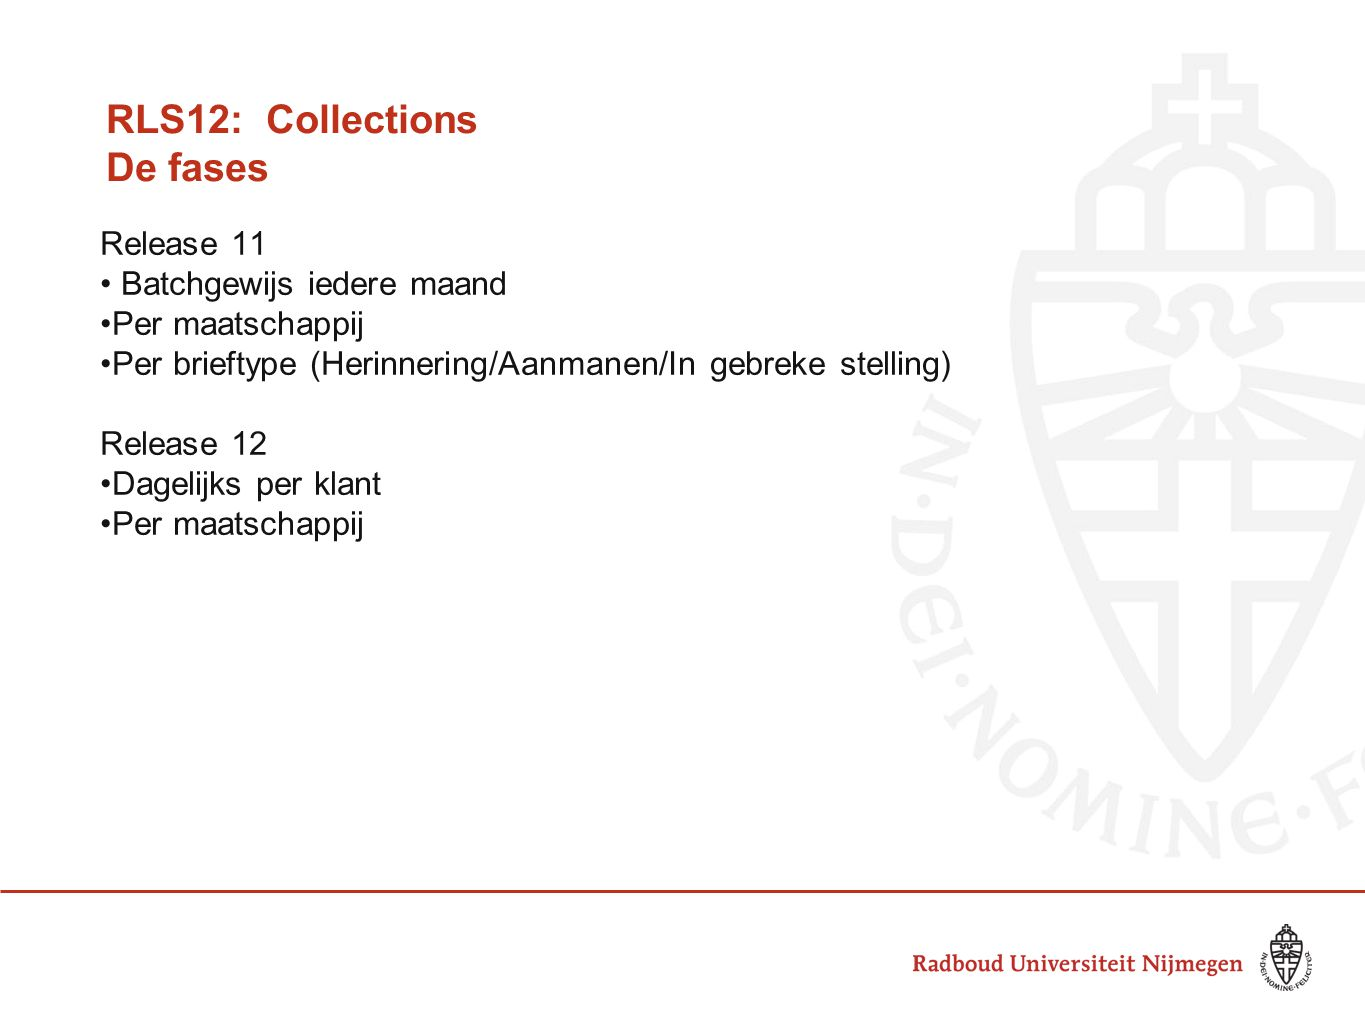 RLS12: Collections De fases